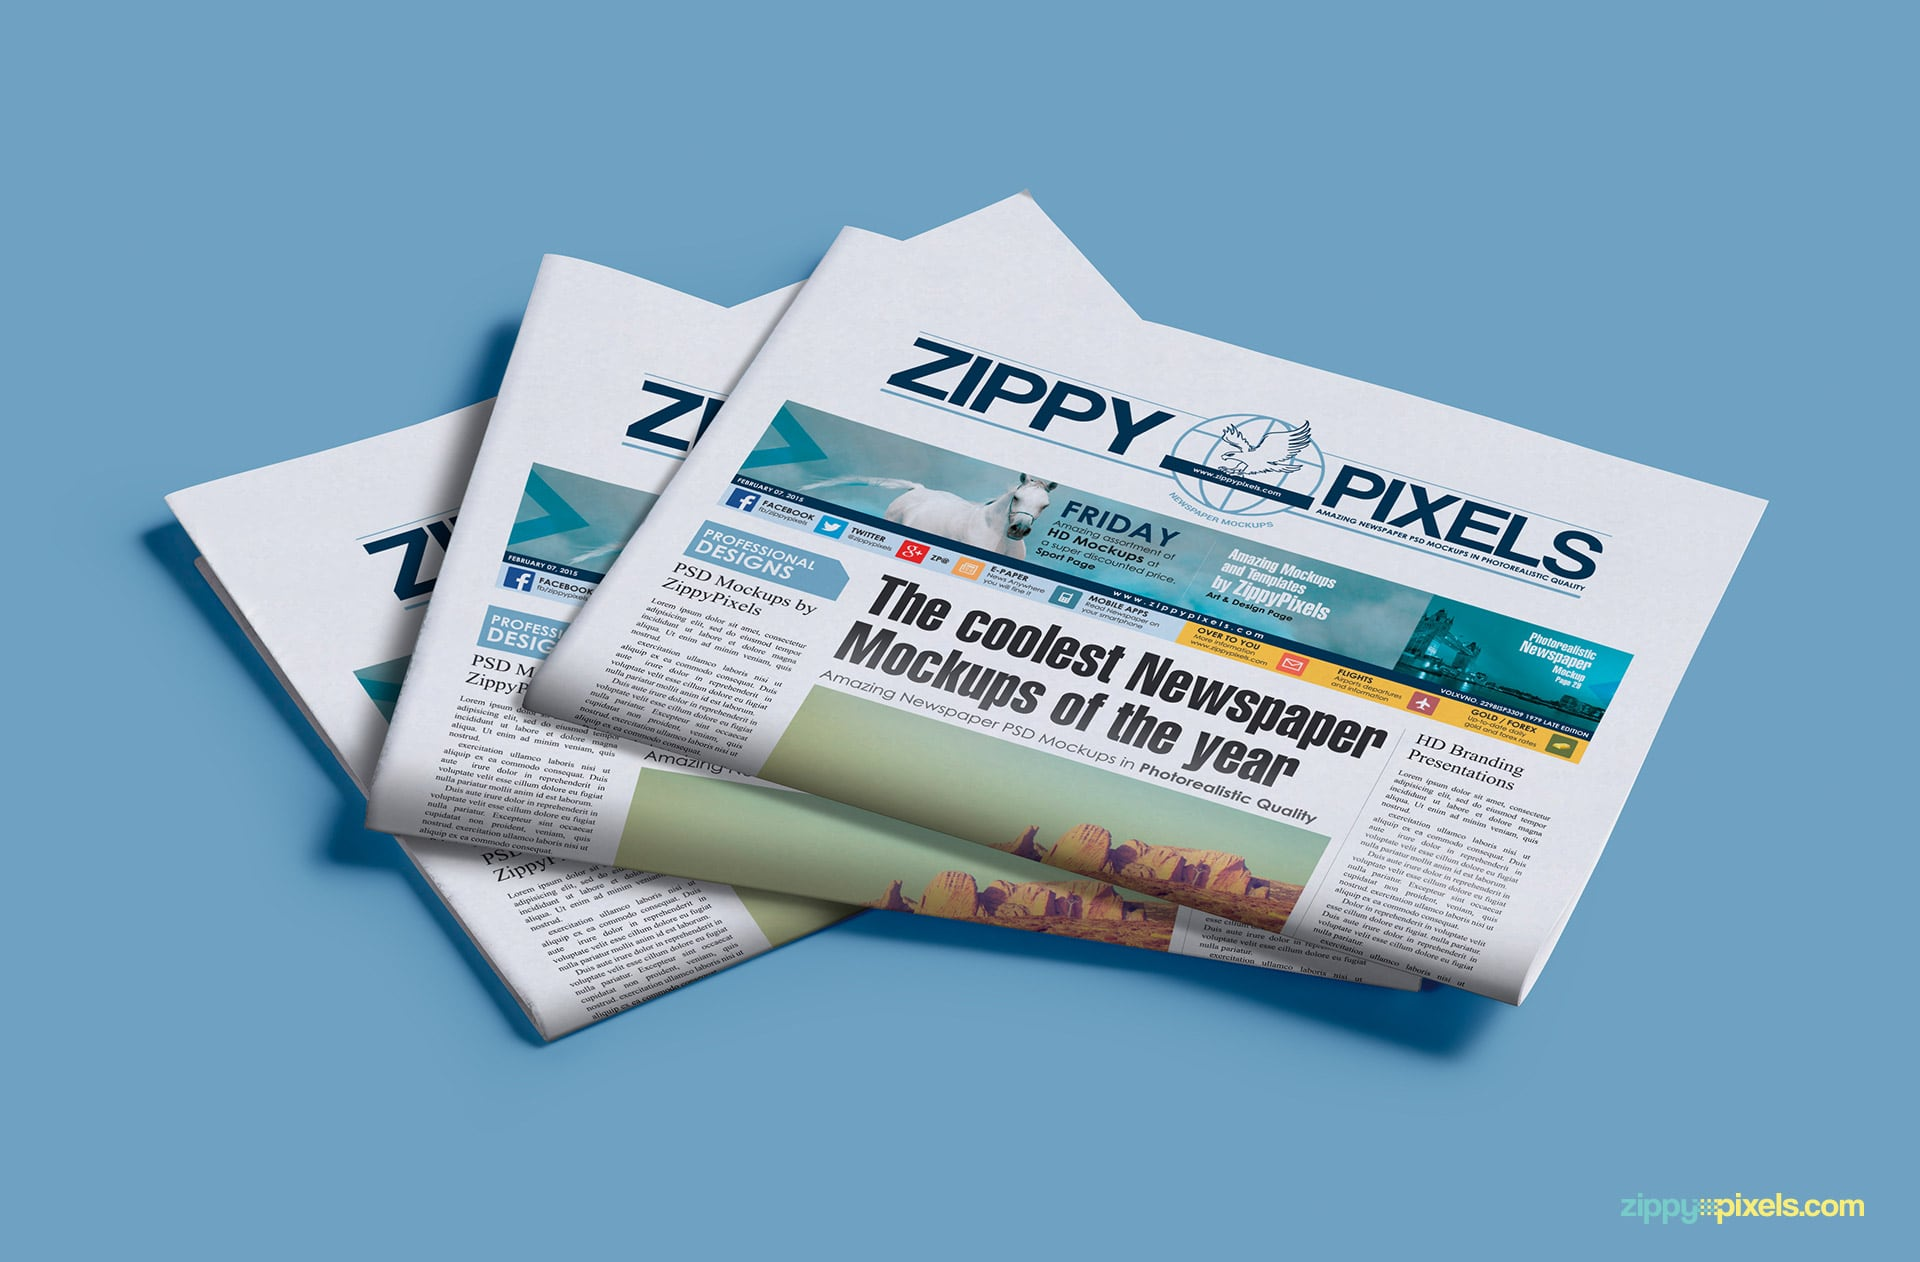 Photorealistic mockup of stack of 3 half folded newspapers with banner ads